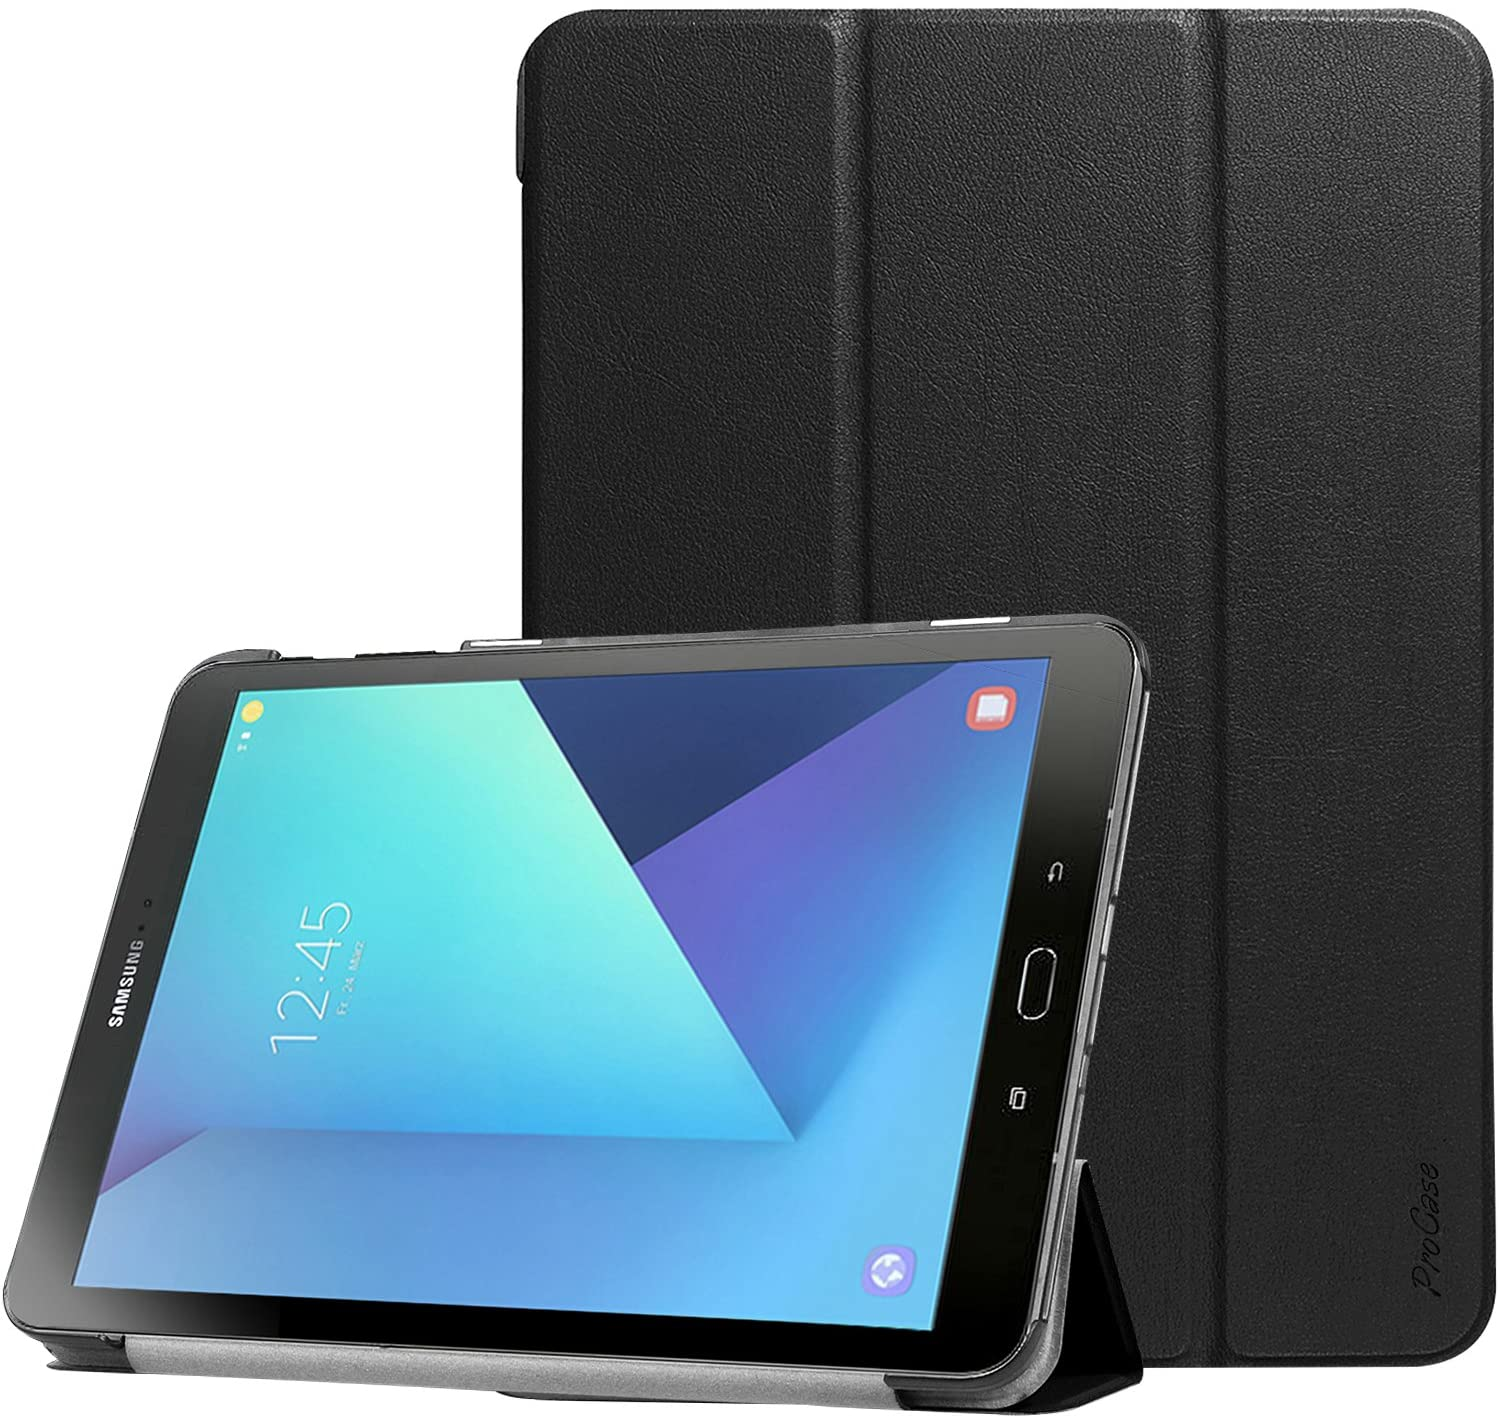 Amazon Com Procase Galaxy Tab S3 9 7 Case Slim Light Smart Cover Stand Hard Shell Case For Galaxy Tab S3 9 7 Inch Tablet Sm T820 T825 T827 Black